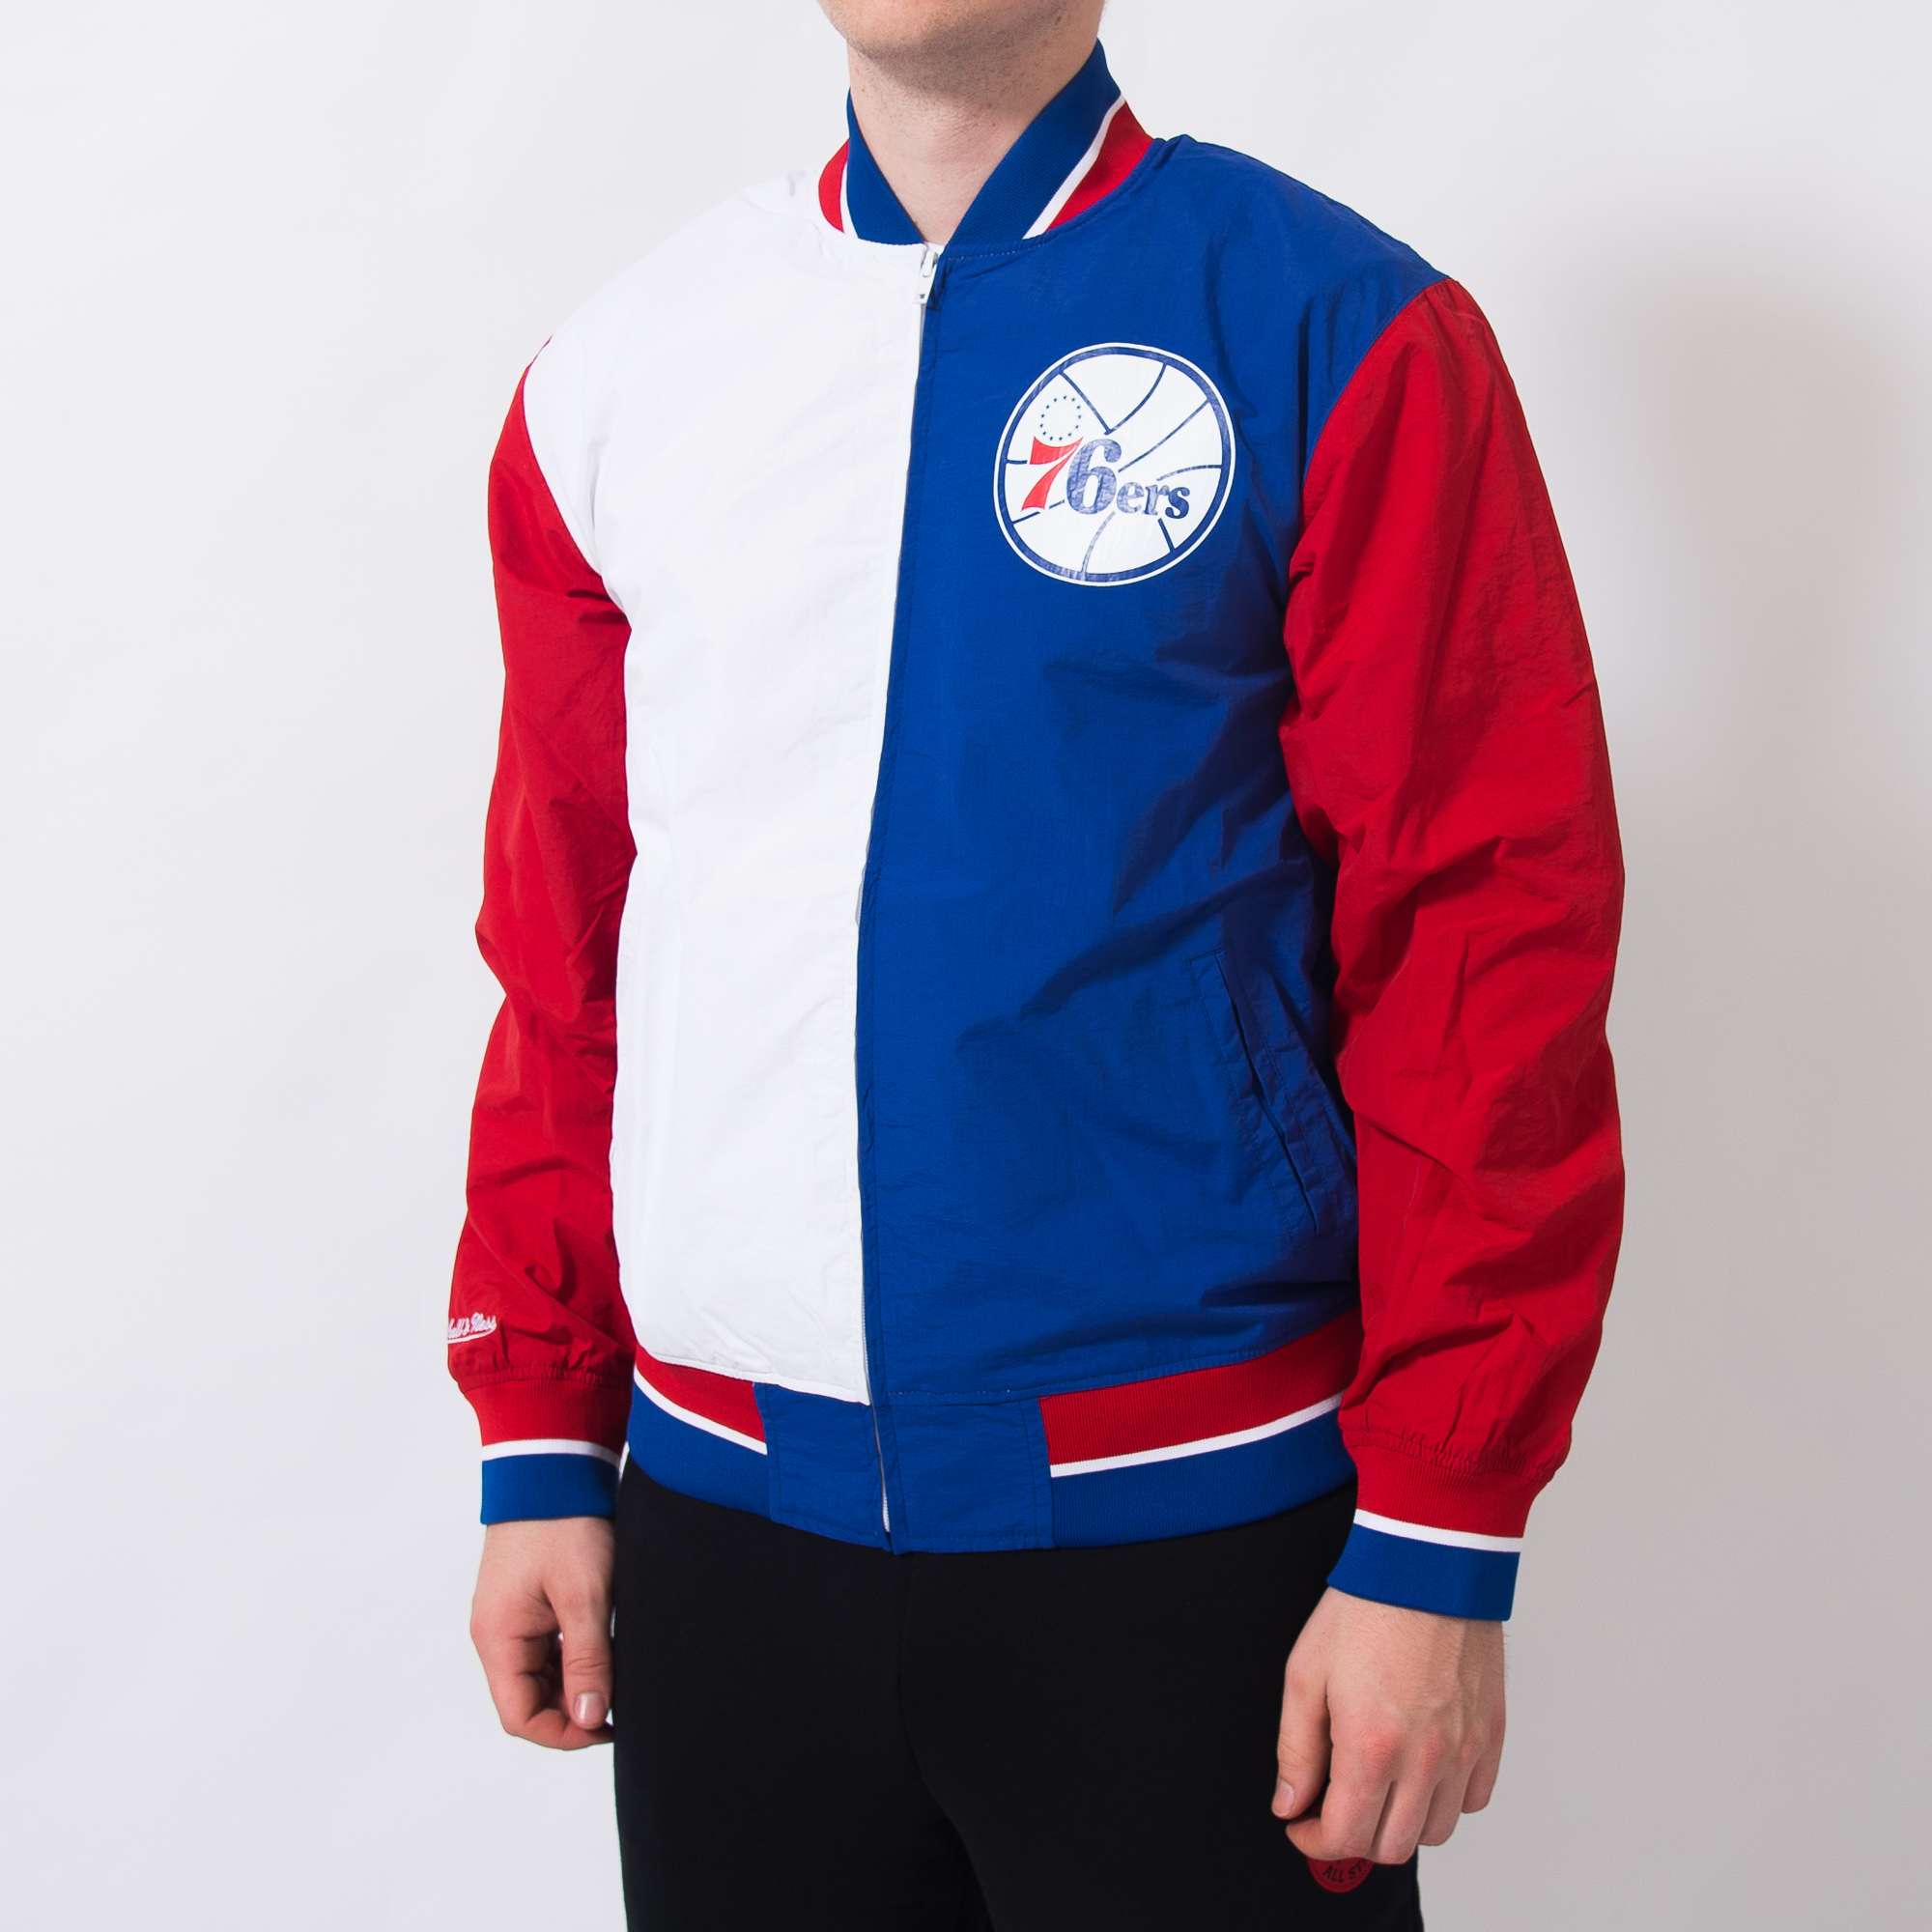 84dc6719d7c Mitchell & Ness NBA Philadelphia 76ers Team History Warm Up Jacket 2.0 - NBA  Shop Philadelphia 76ers Merchandise - Superfanas.lt